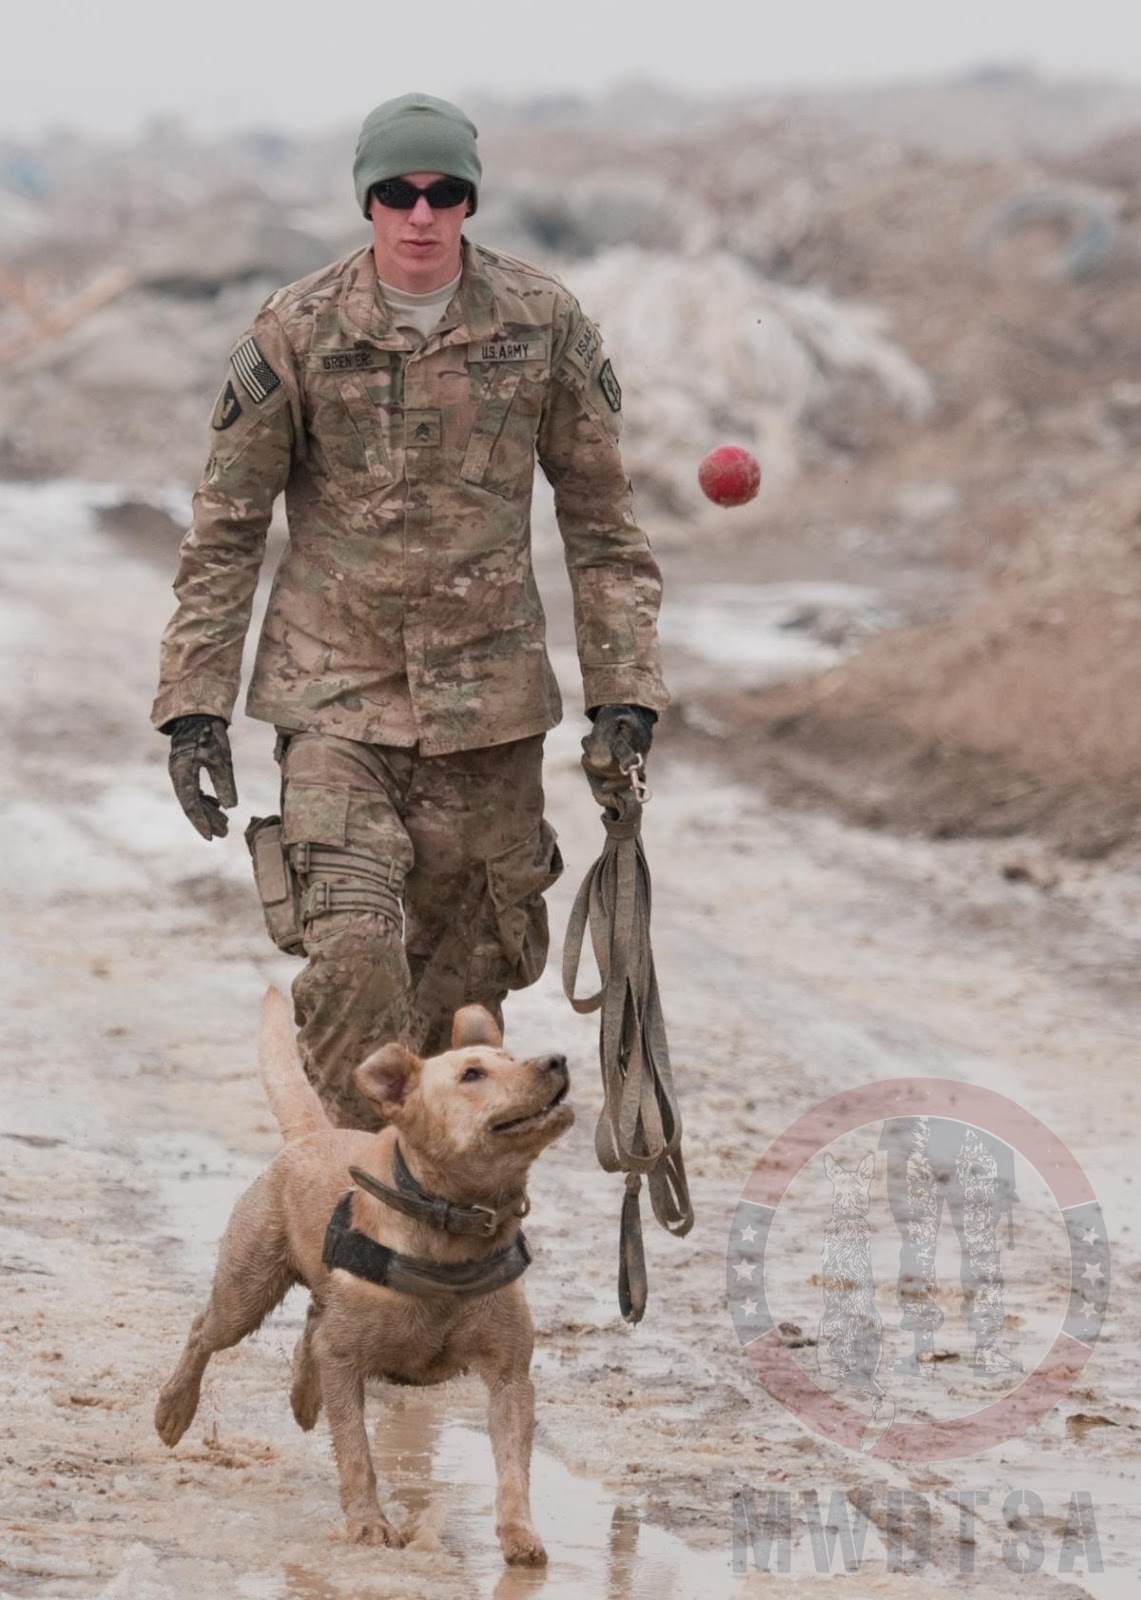 Sgt. Garret Grenier, a dog handler, gives Staff Sgt. Drake, a mine-detection dog, his favorite toy as a reward after a successful training session at Bagram Airfield, Afghanistan, Jan. 8, 2013.